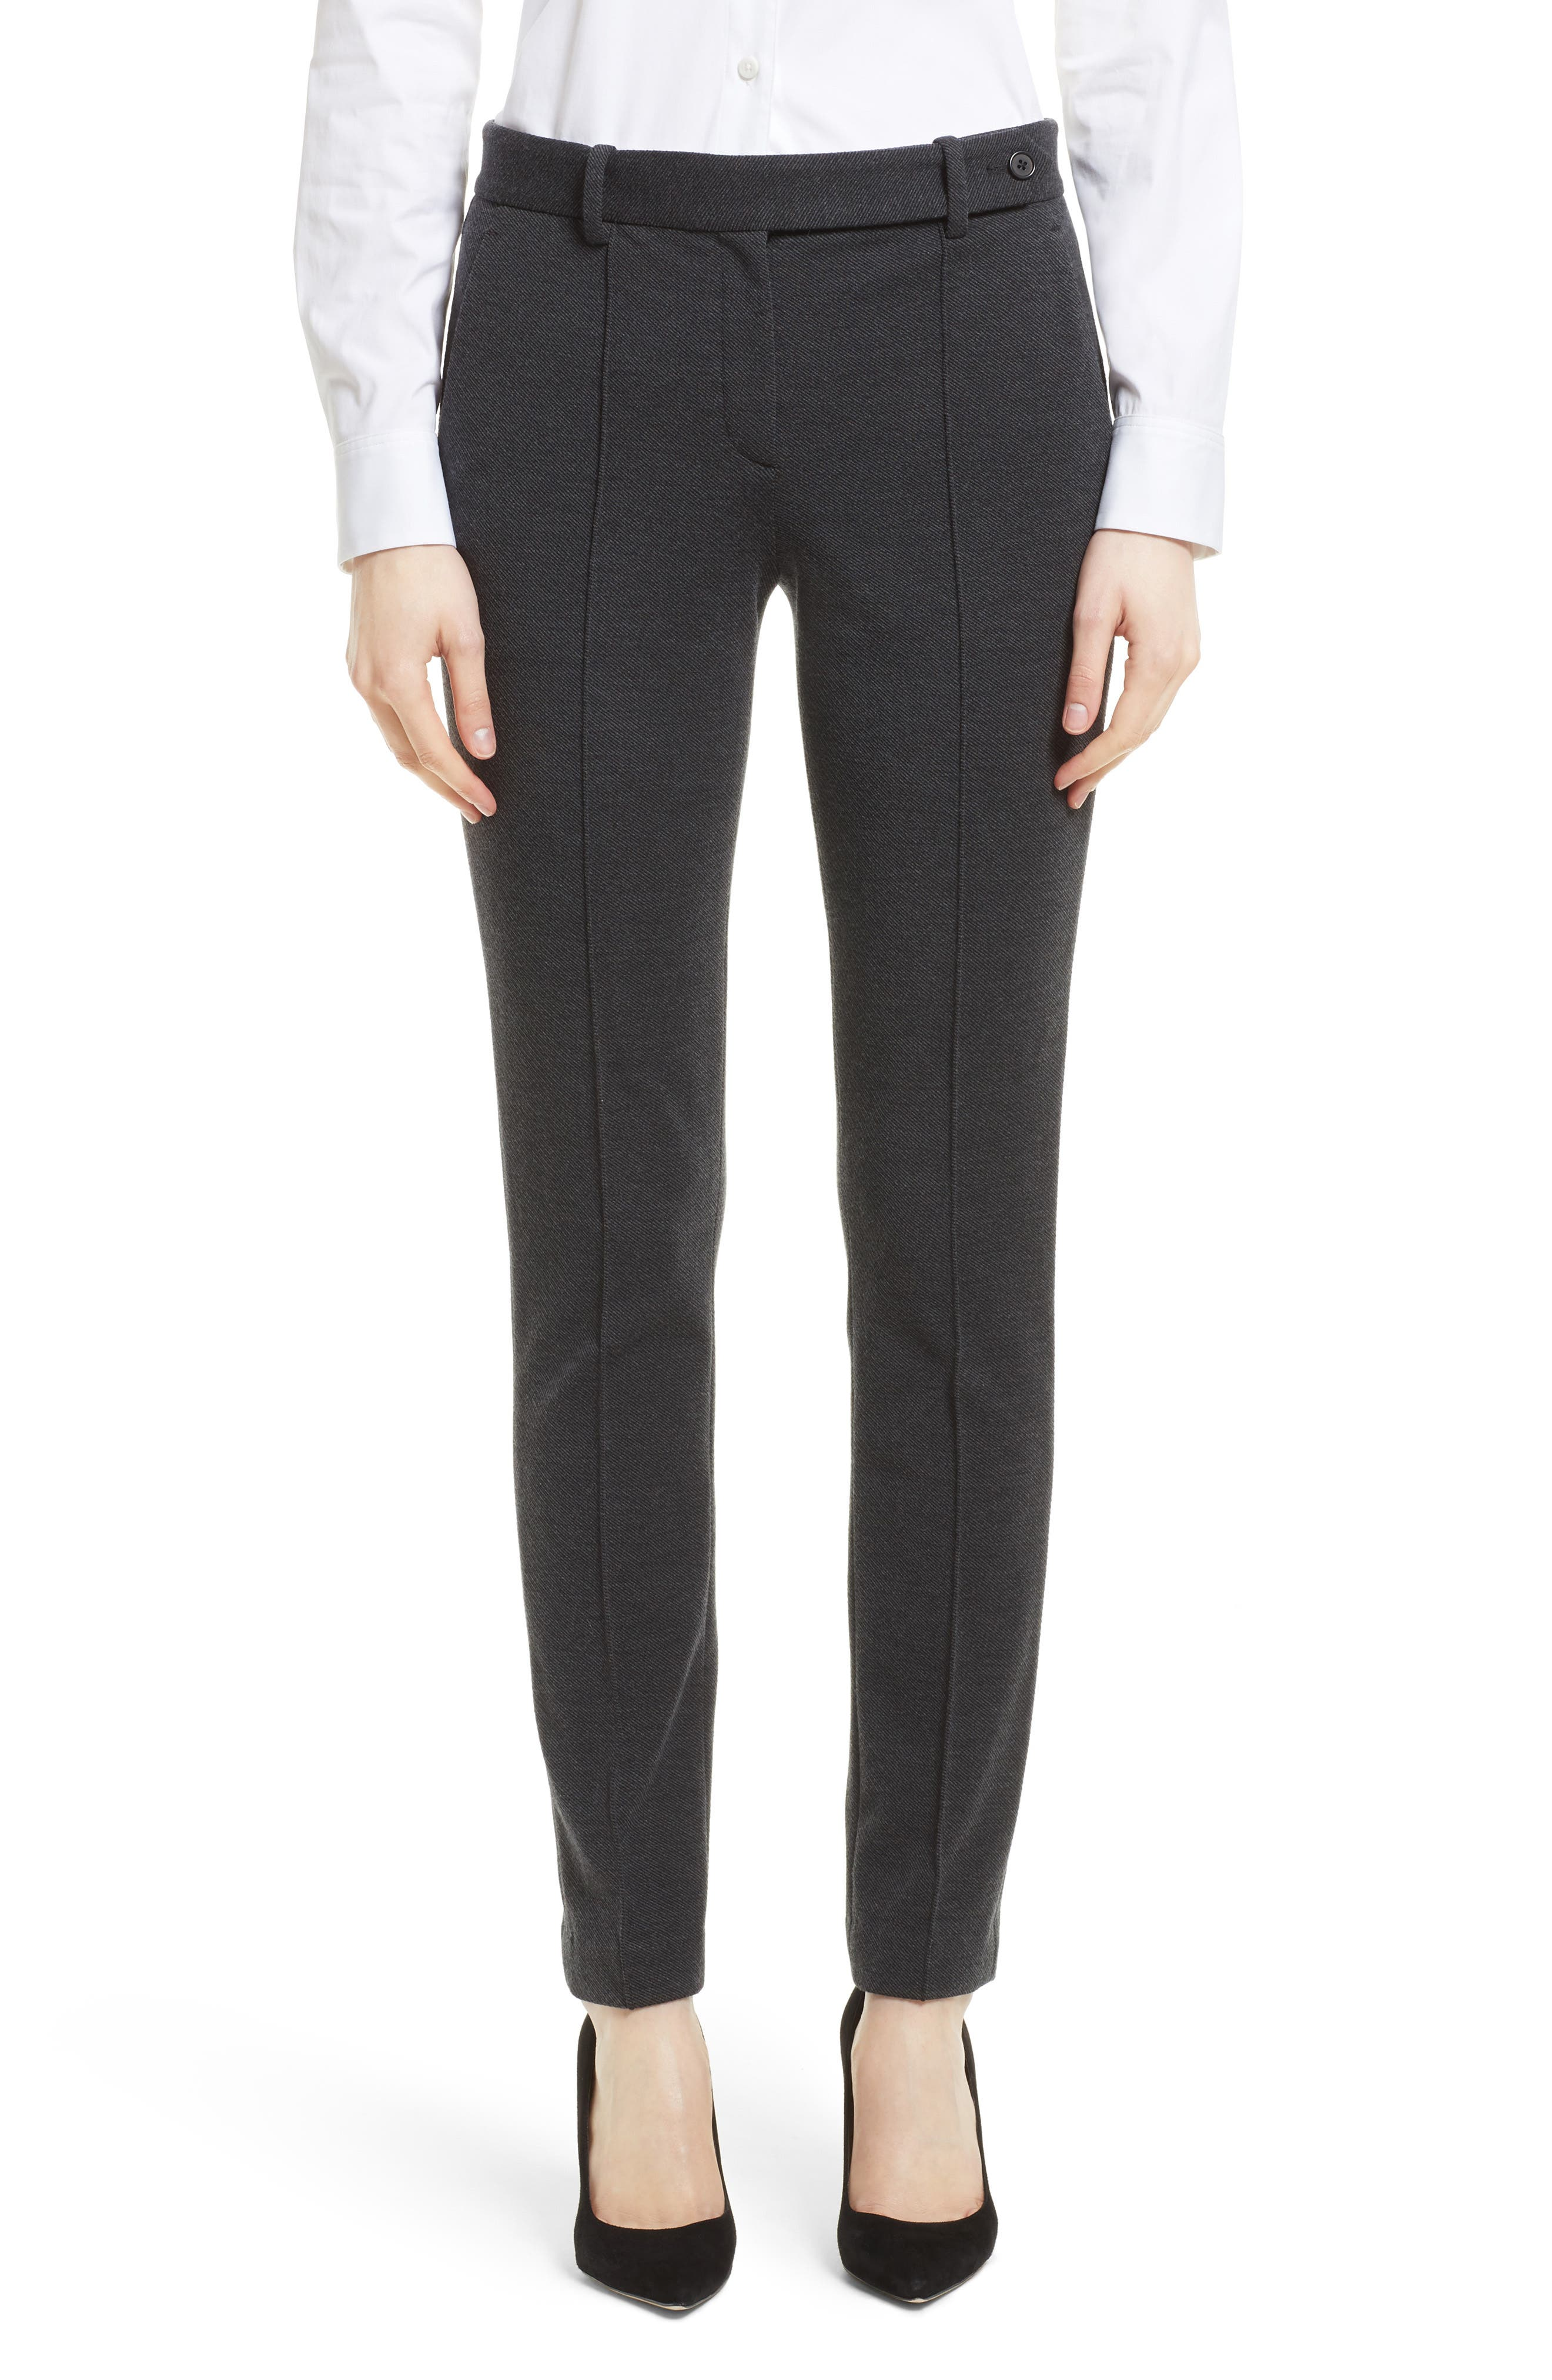 Alternate Image 1 Selected - Theory Pintuck Knit Twill Pants